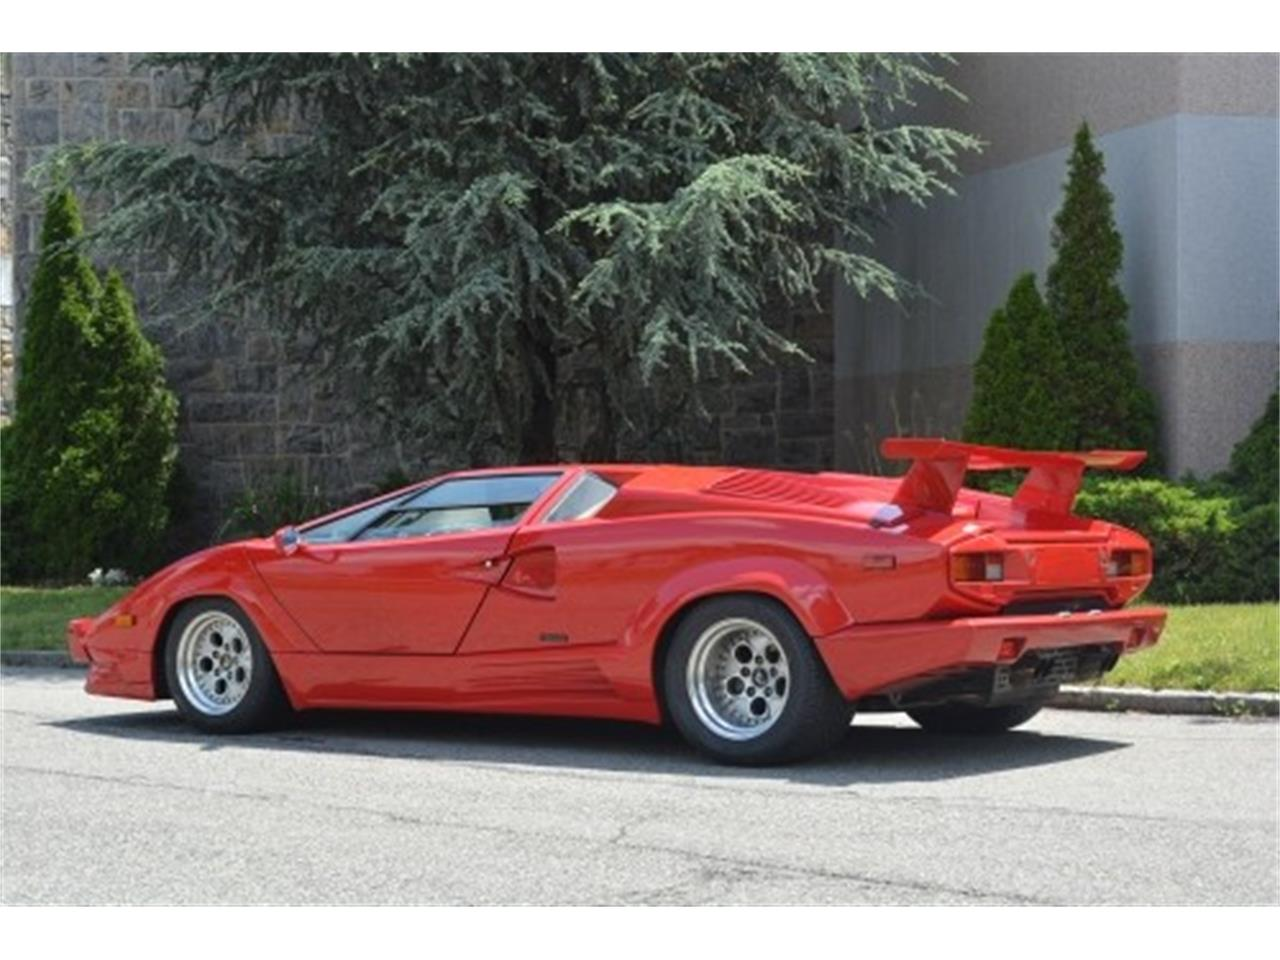 Large Picture of '89 Countach located in Astoria New York Offered by Gullwing Motor Cars - EYKT